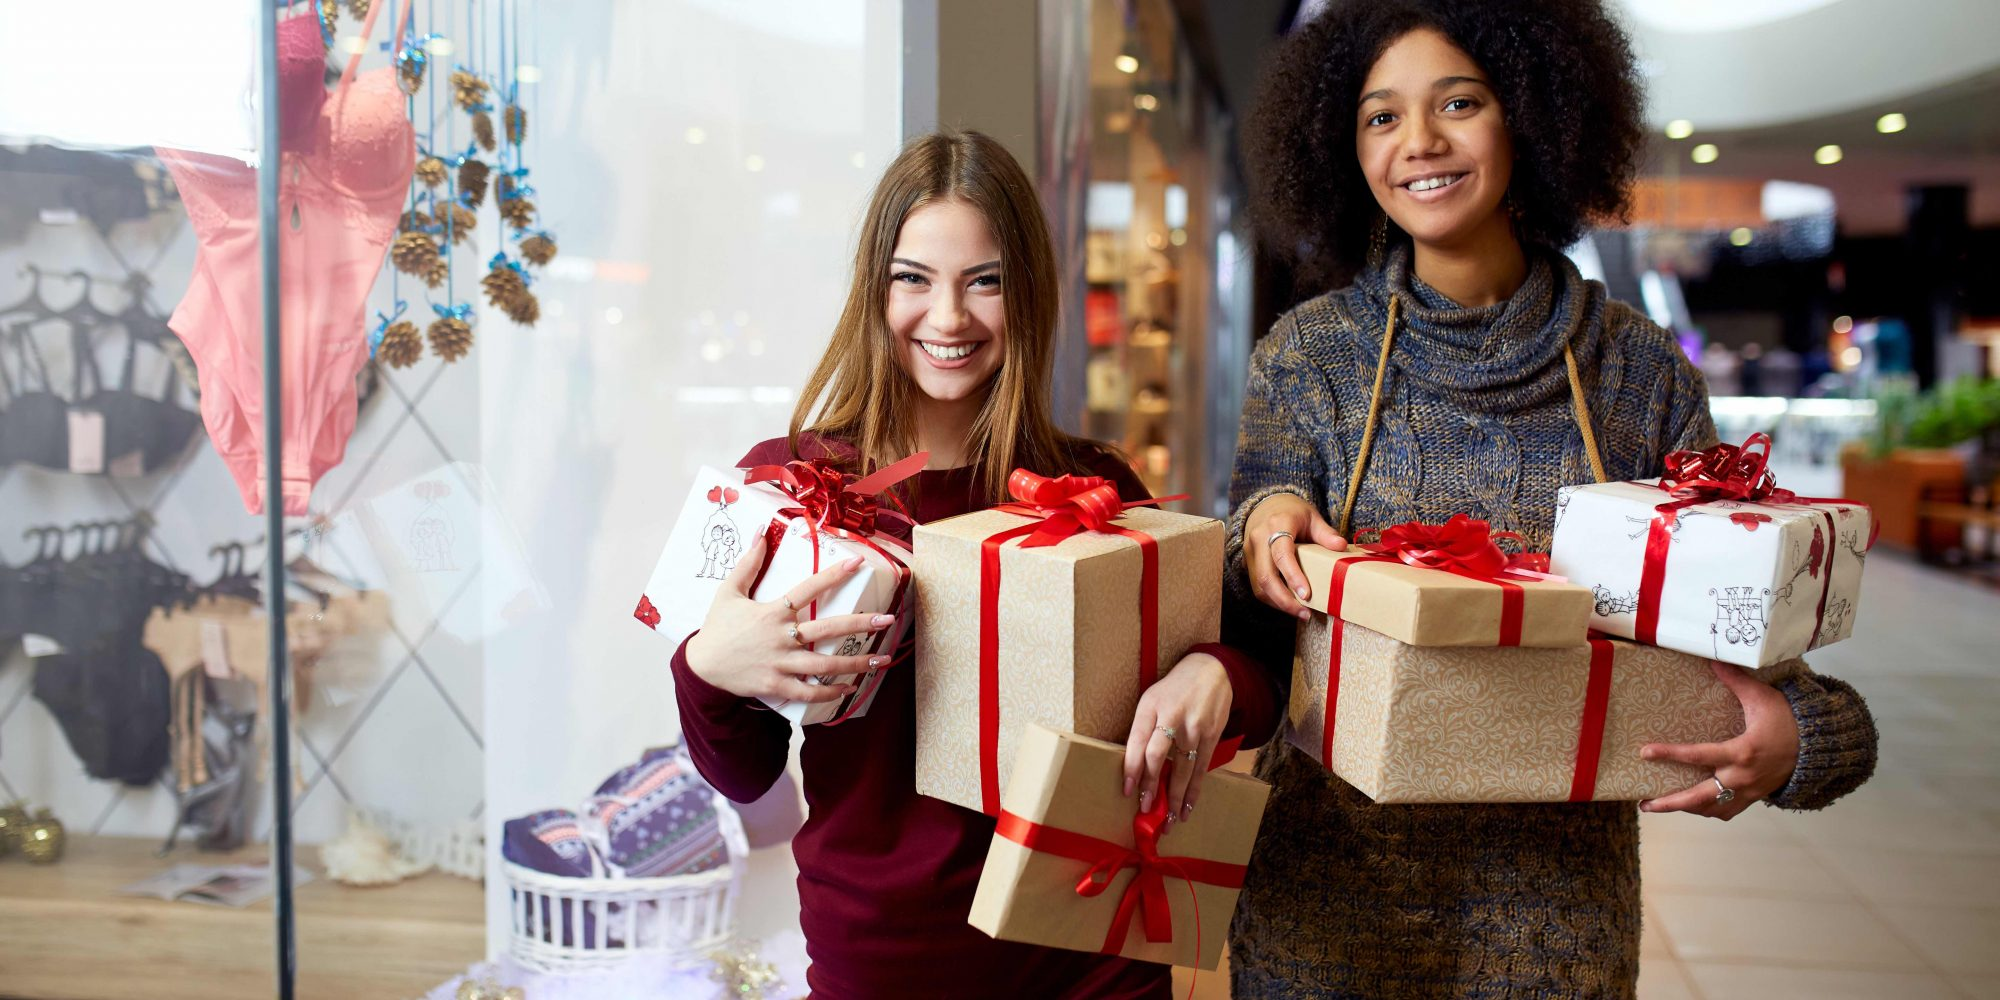 Tired Of Black Friday? Brand Founders Lead New Shopping Initiatives To Make Holiday Purchases More Well Meaning